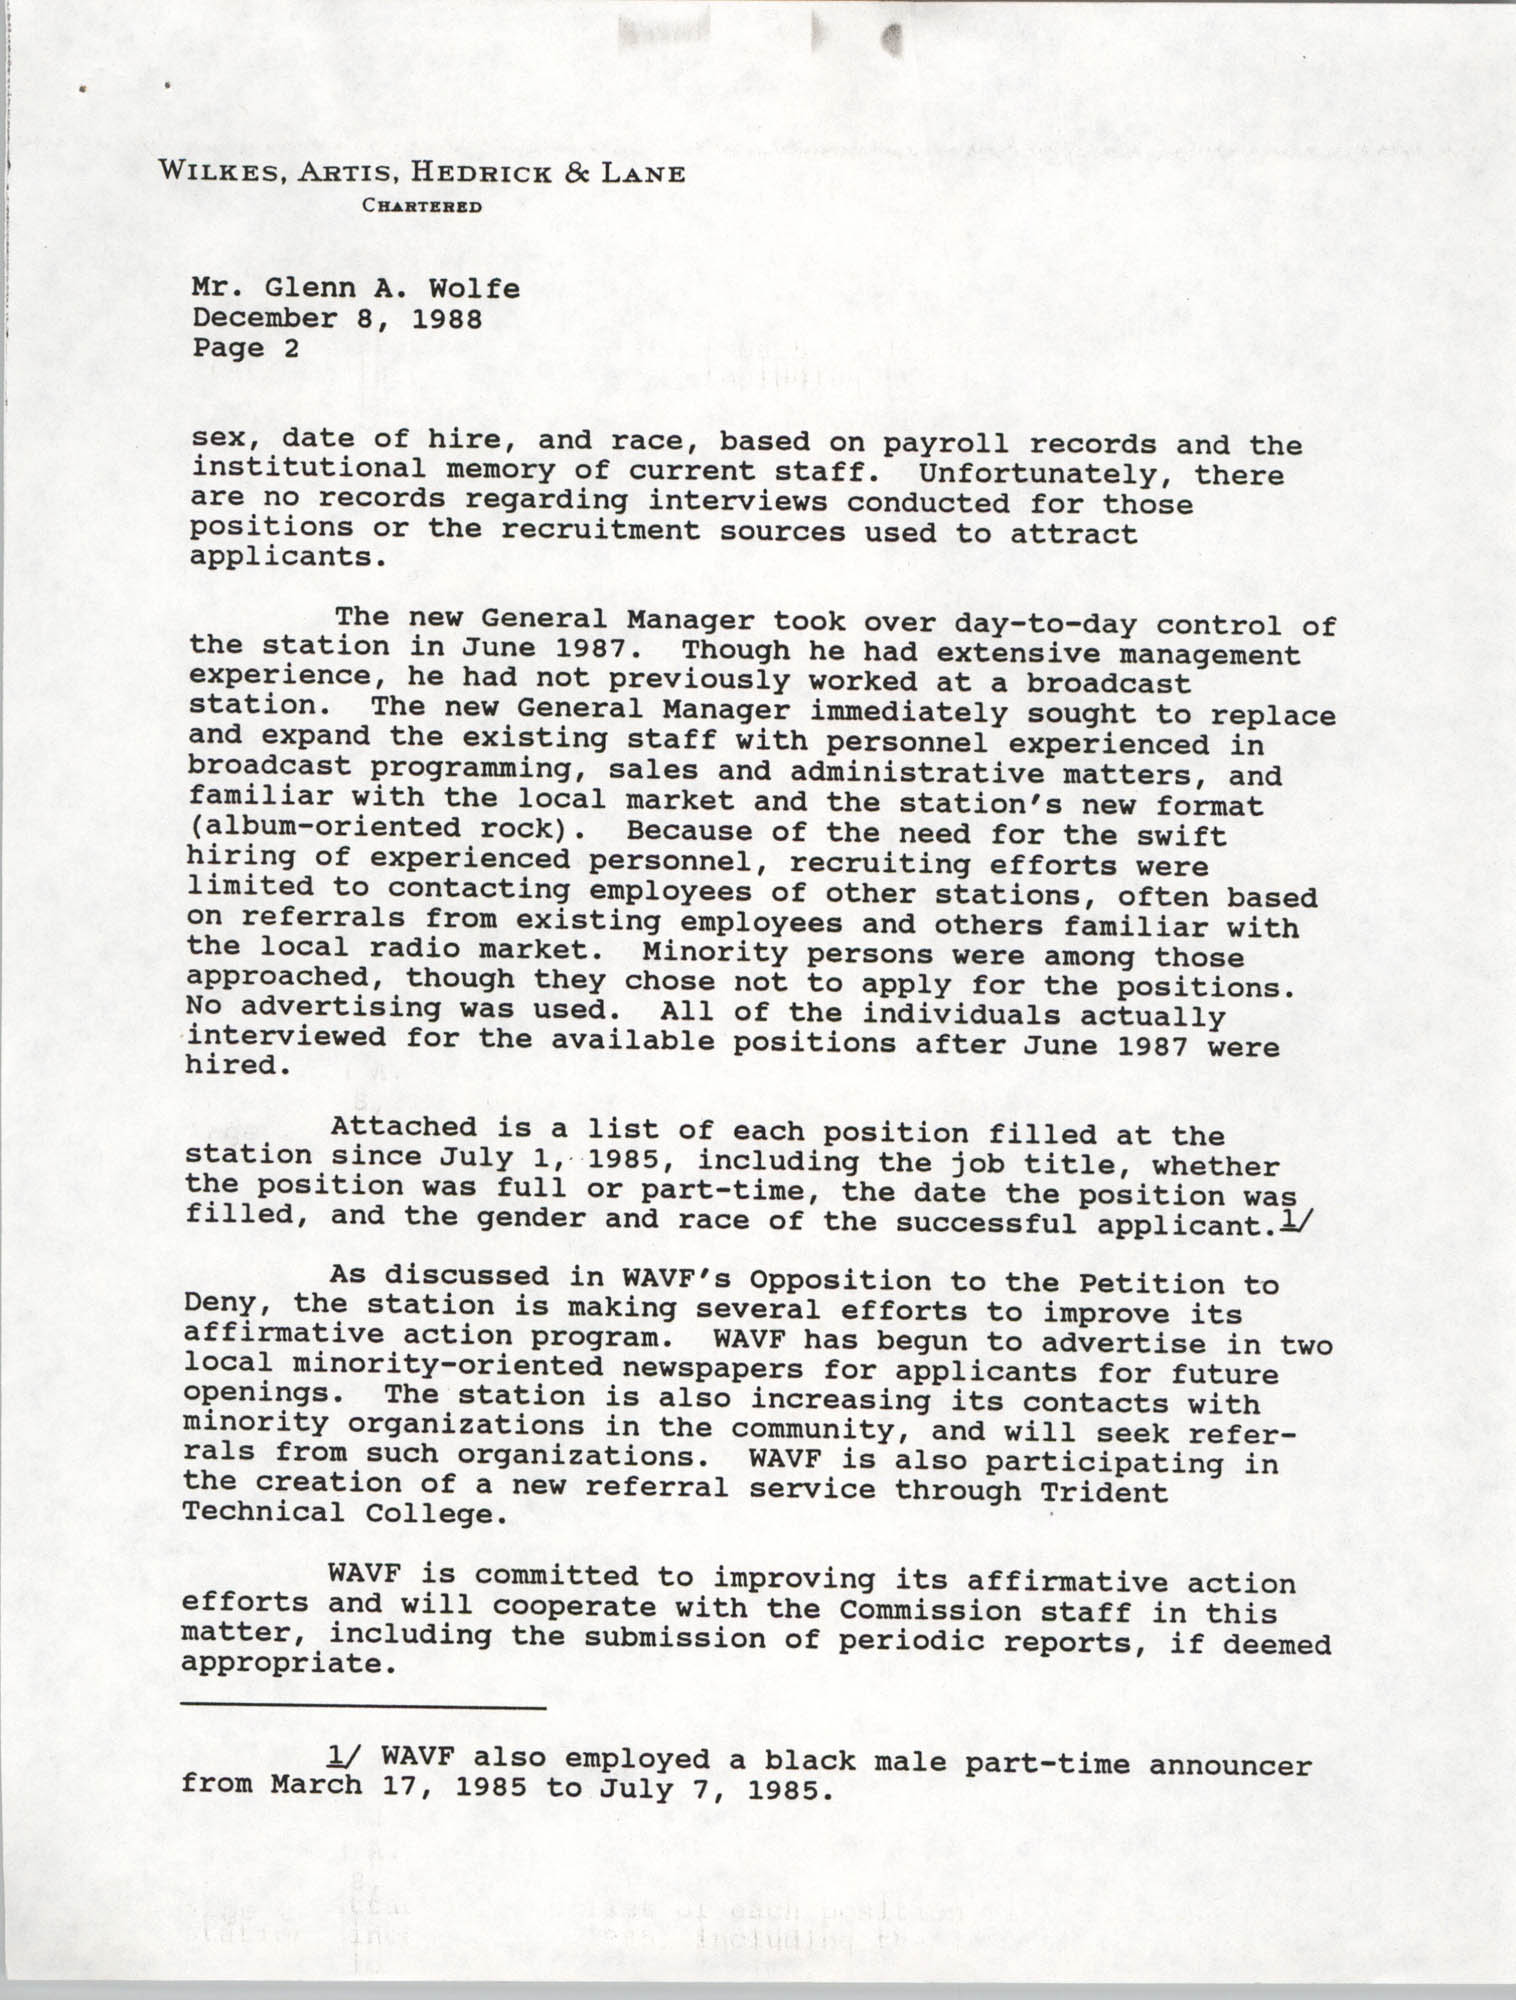 Letter from Martin J. Gaynes and Robert M. Gurss to Glenn A. Wolfe, December 8, 1988, Page 2